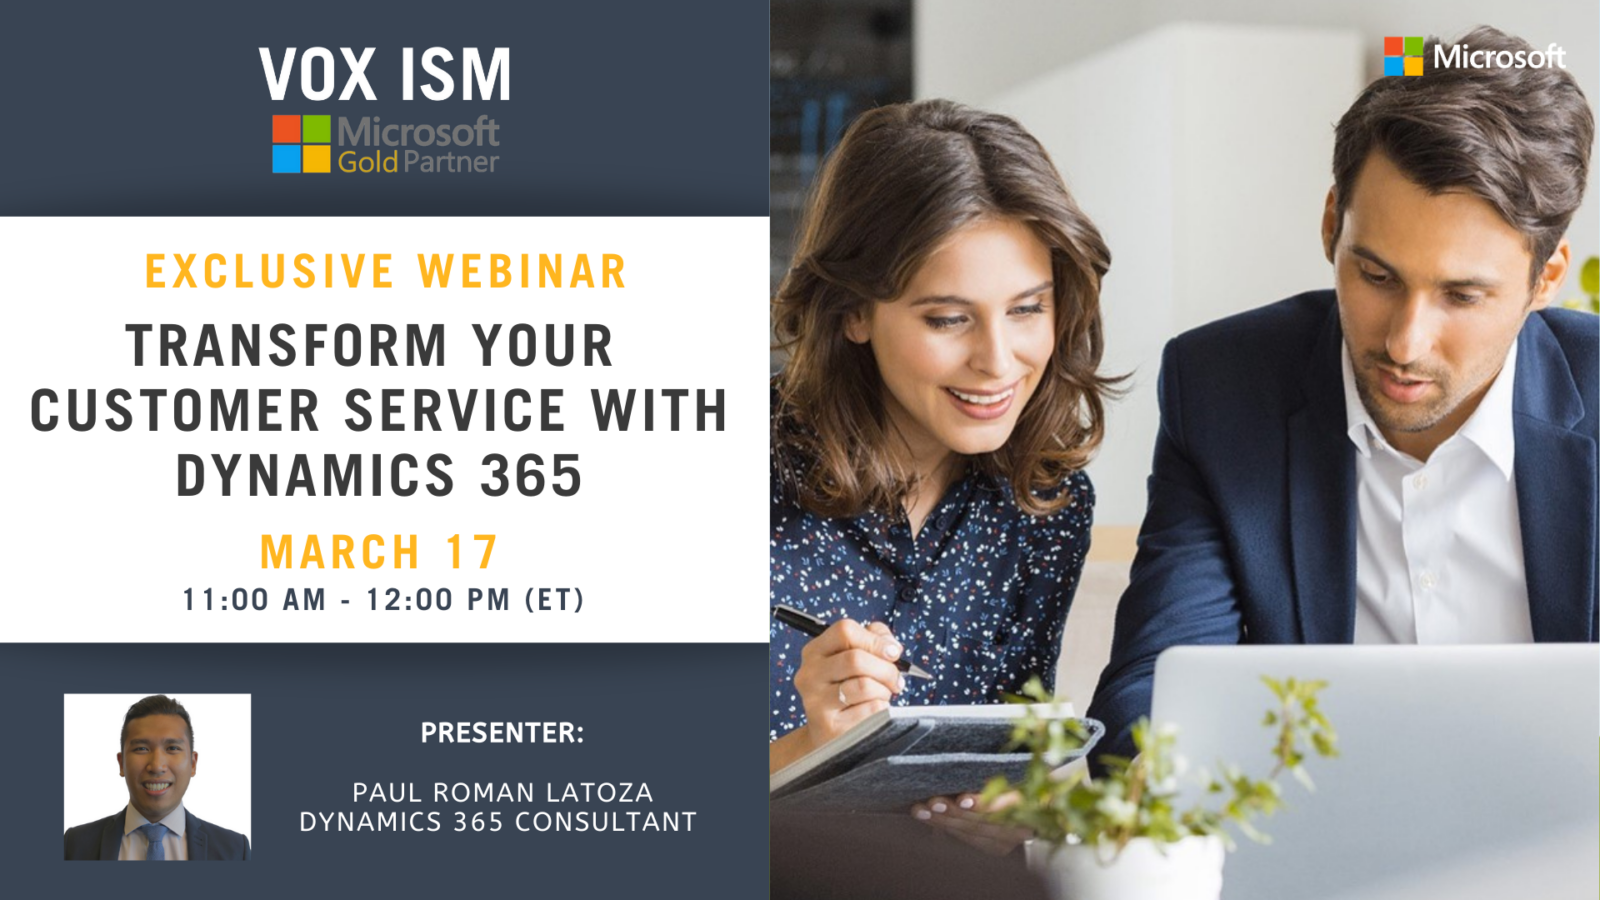 Transform Your Customer Service With Dynamics 365 - March 17 - Webinar